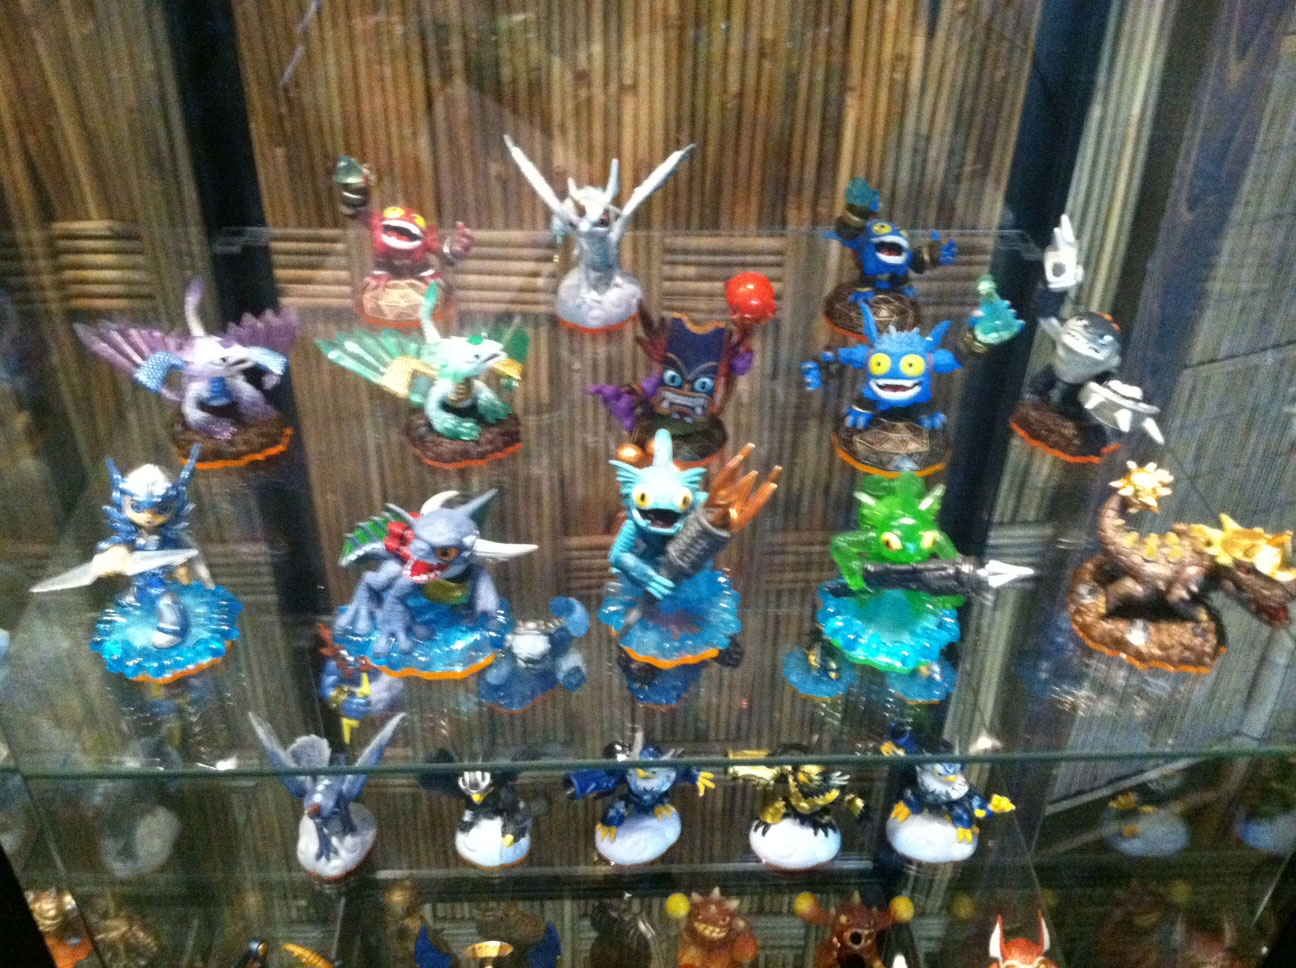 skylanders giants preview impressions images prototypes